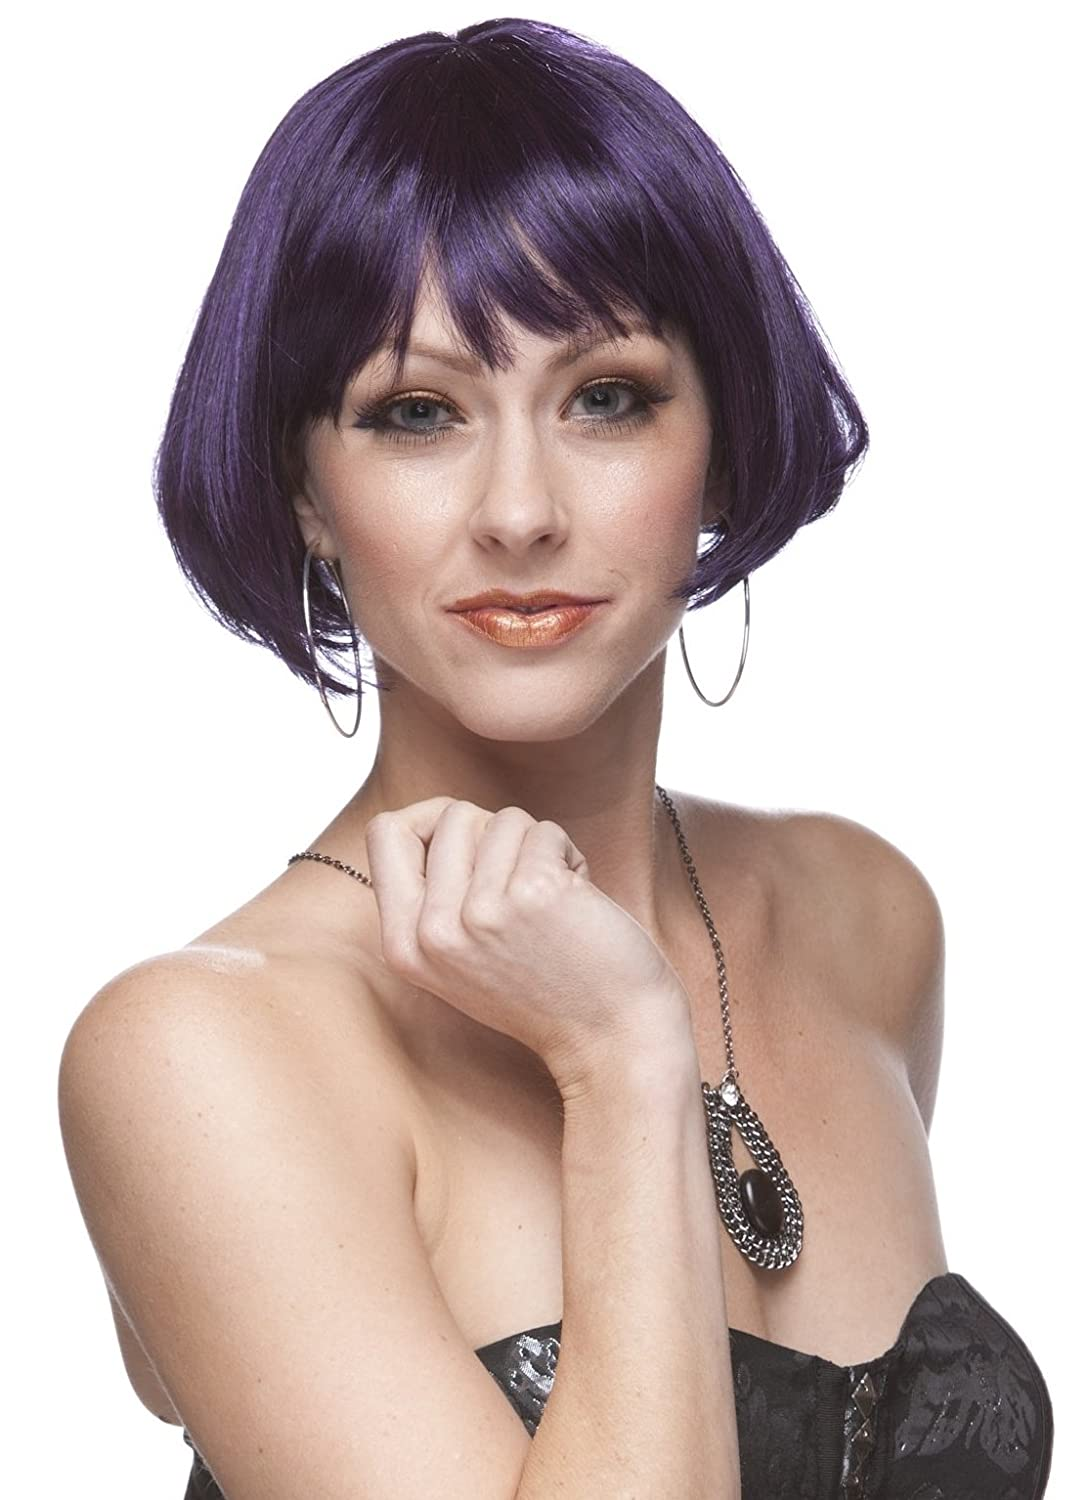 Sepia Costume Wig Eve Sales Ranking TOP7 of SALE items from new works - F27.613